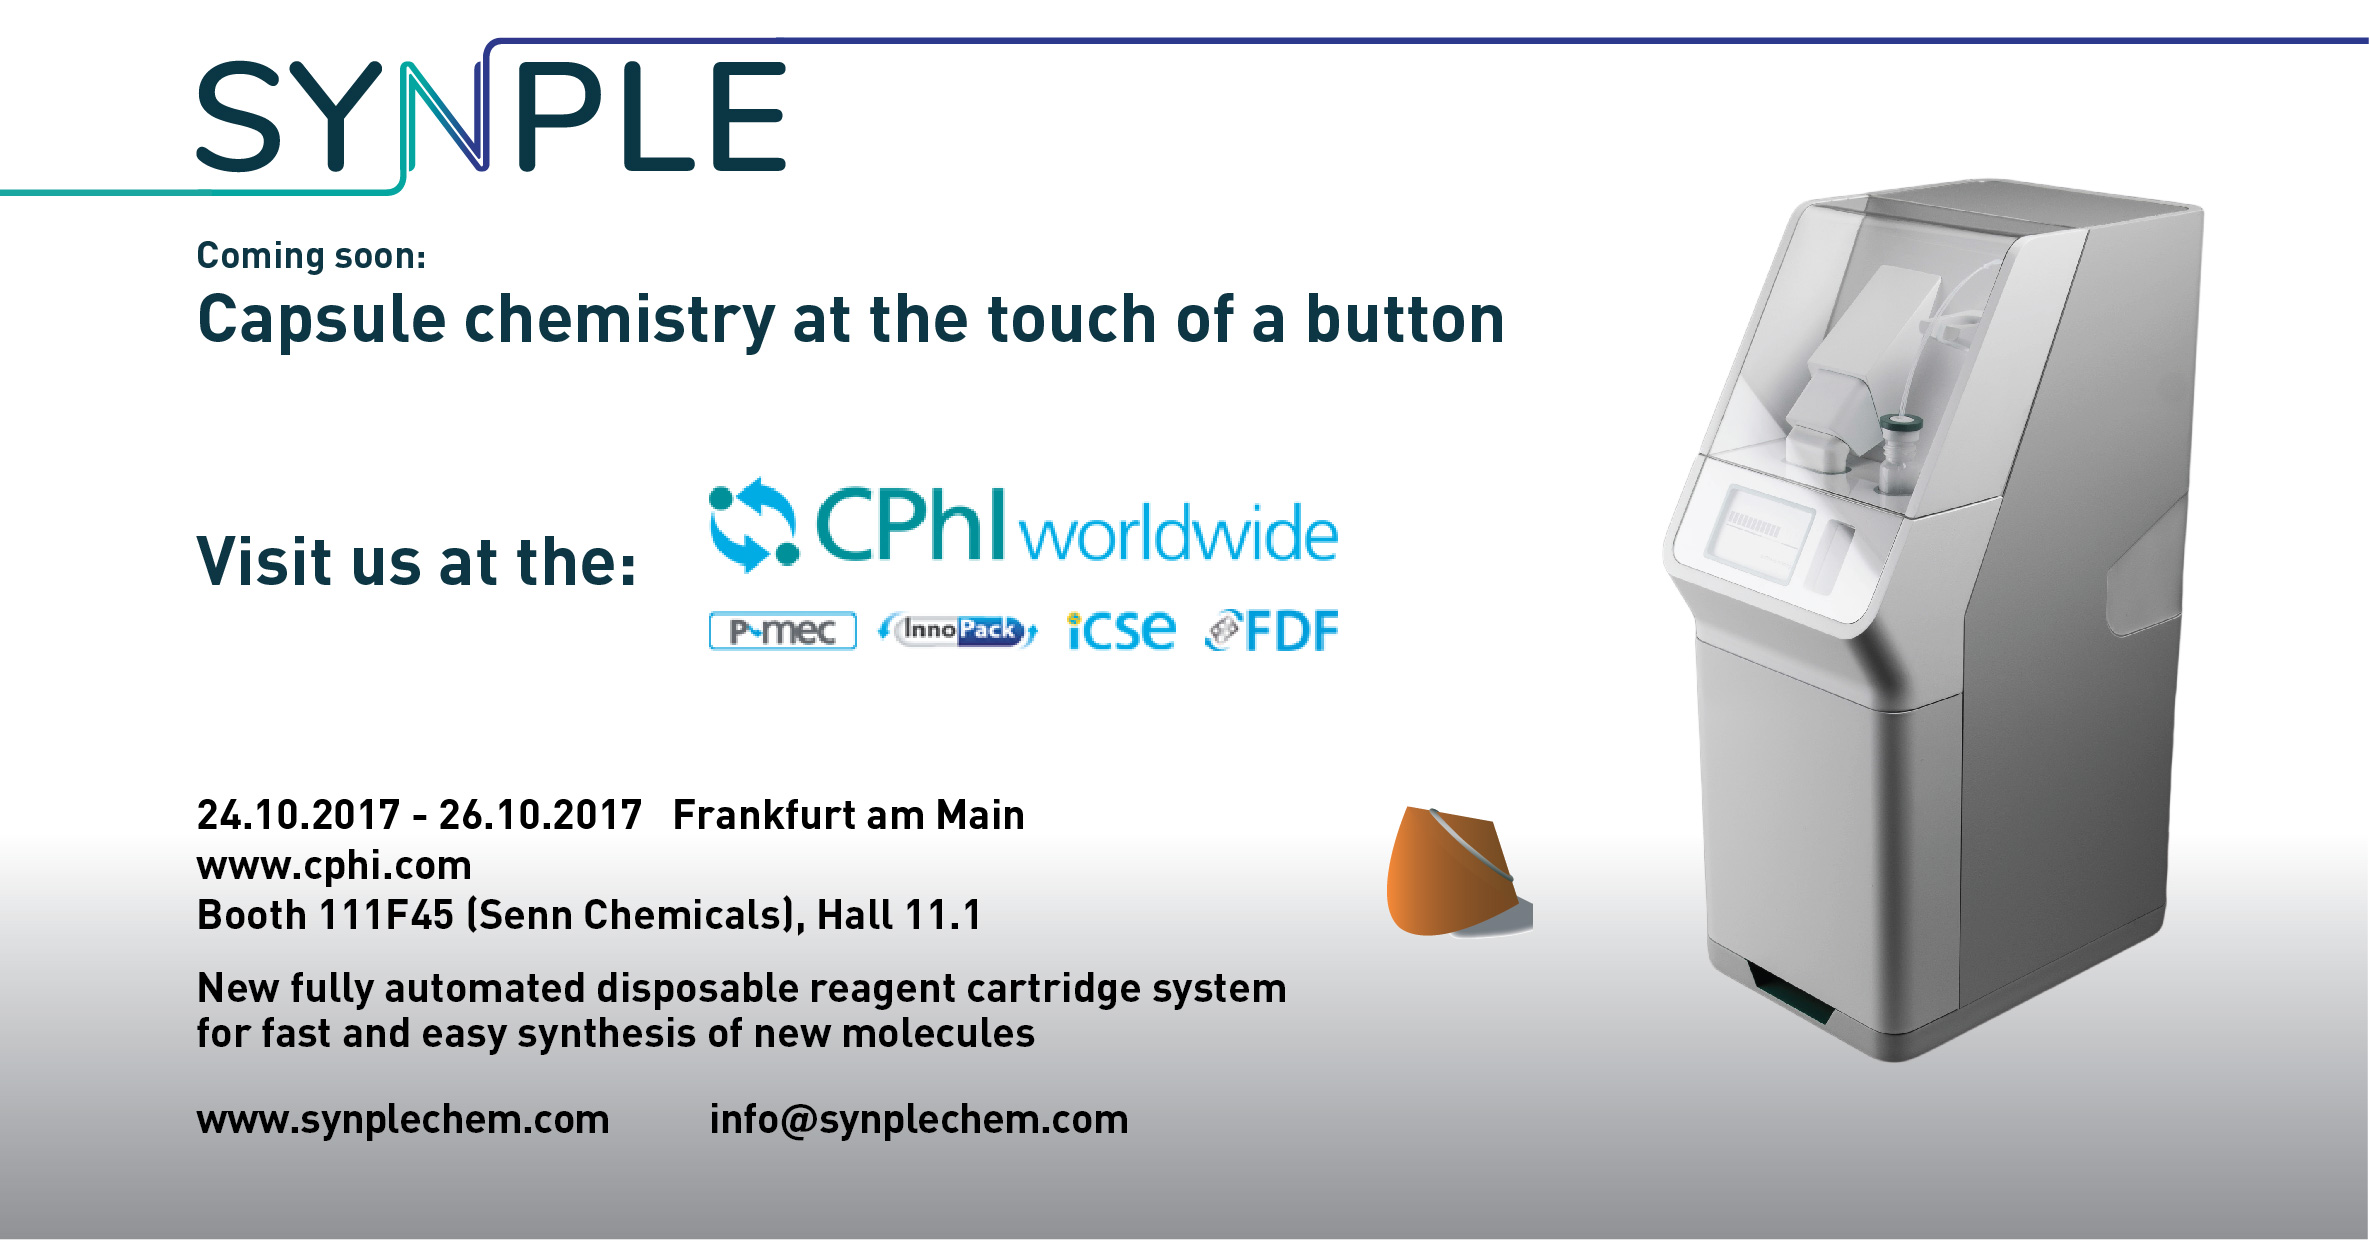 We will be at the CPhI 2017: